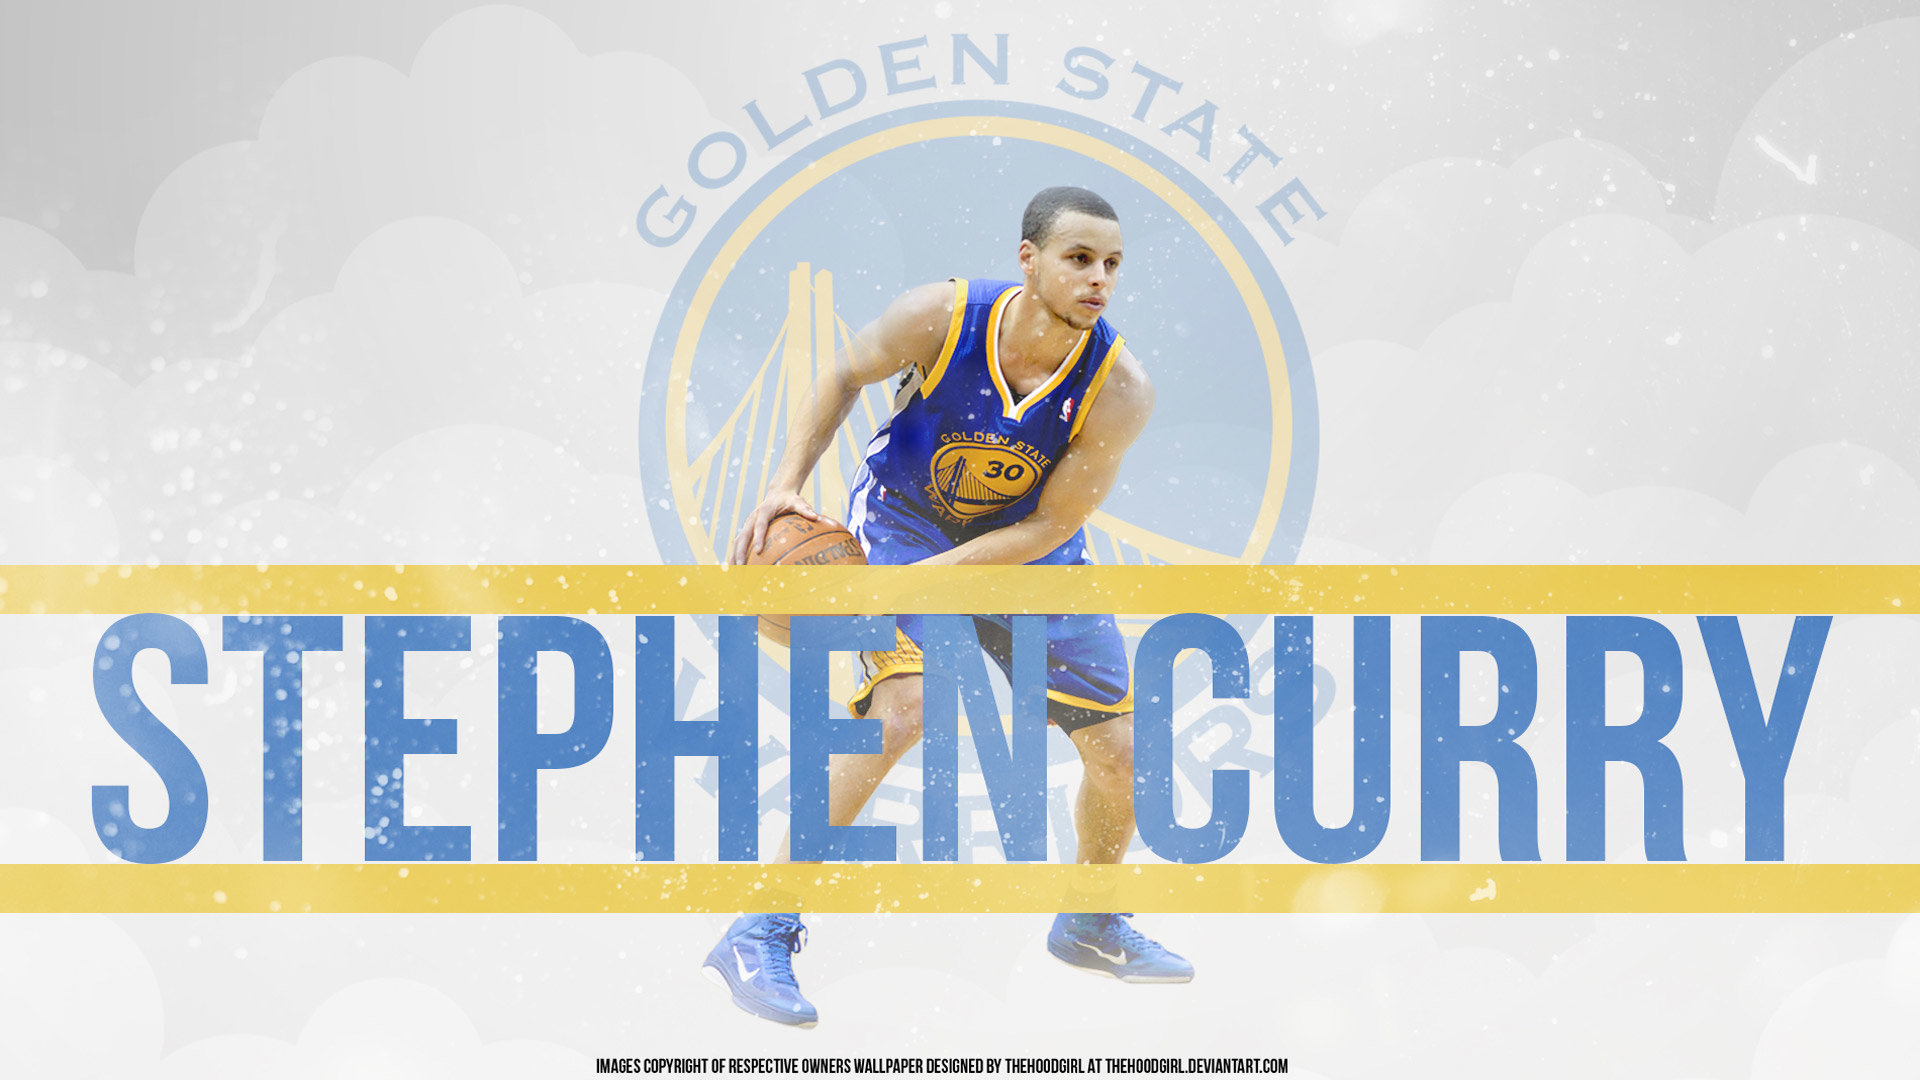 Awesome Golden State Warriors free wallpaper ID:470684 for full hd desktop